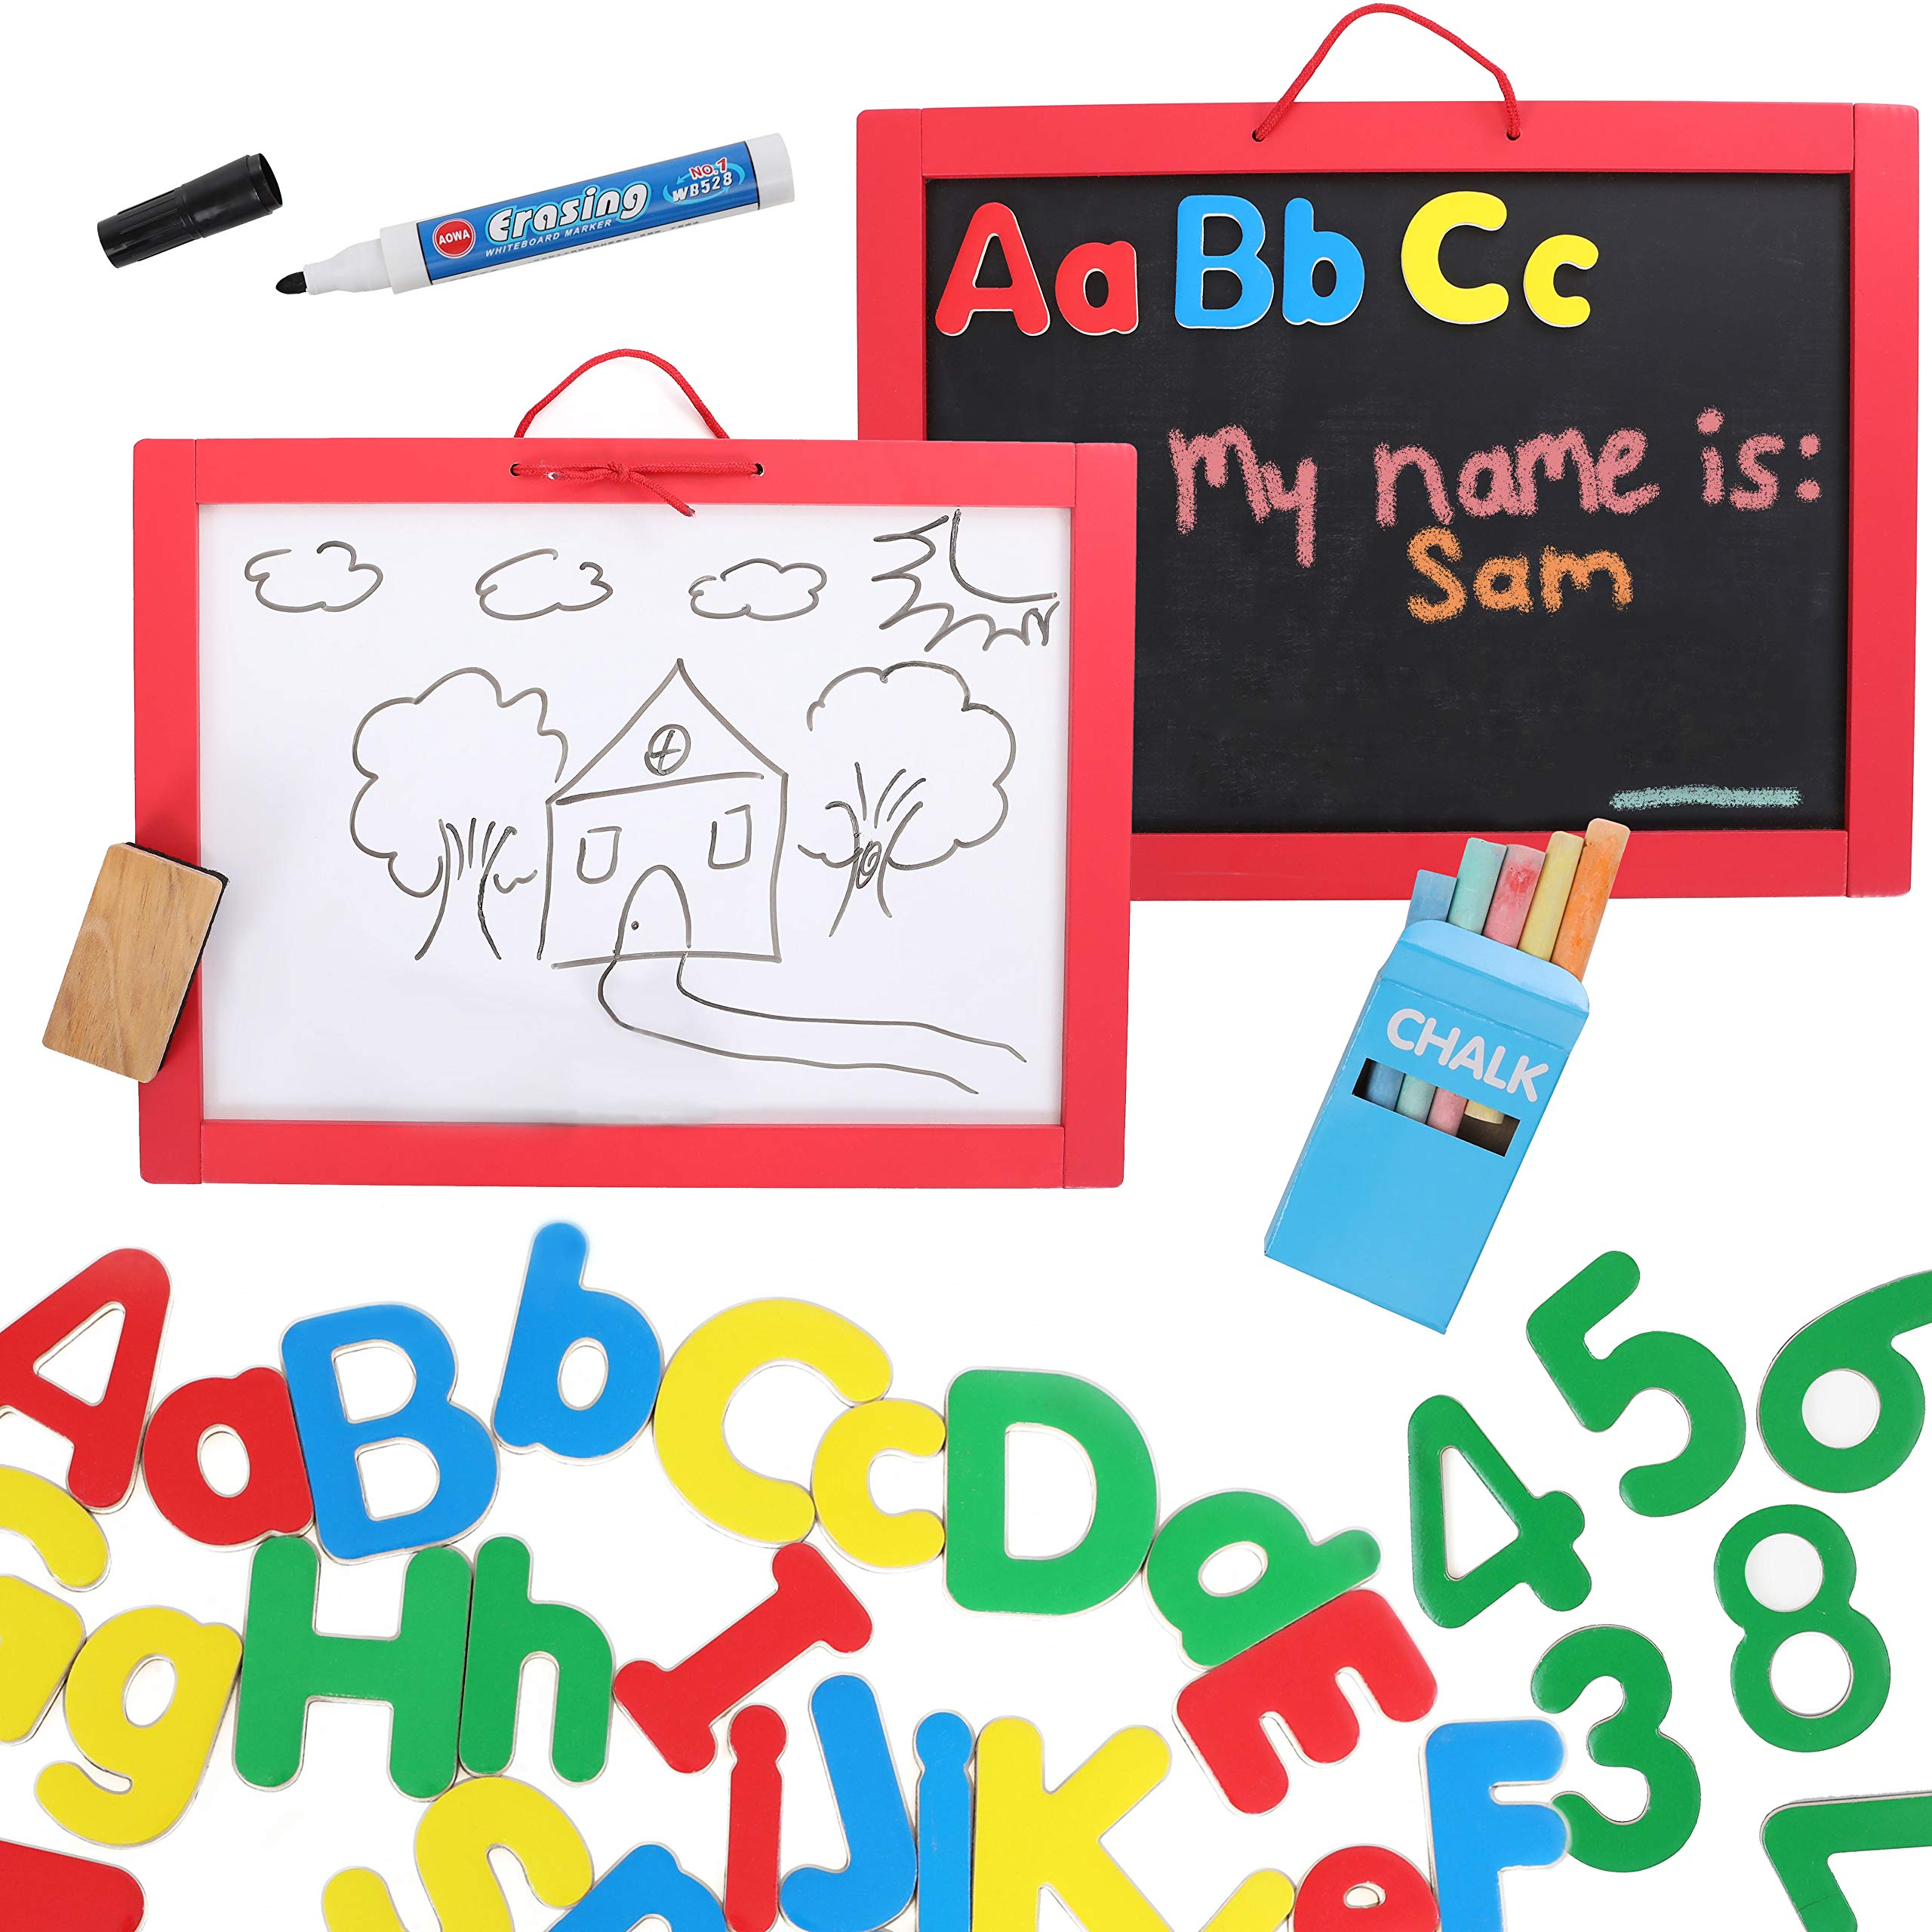 Kraftic 3 in 1 Magnetic ABC Art Board, 62 Magnetic Wood Alphabet and Numbers with Dry Eraser, Marker, Chalkboard Color Chalk